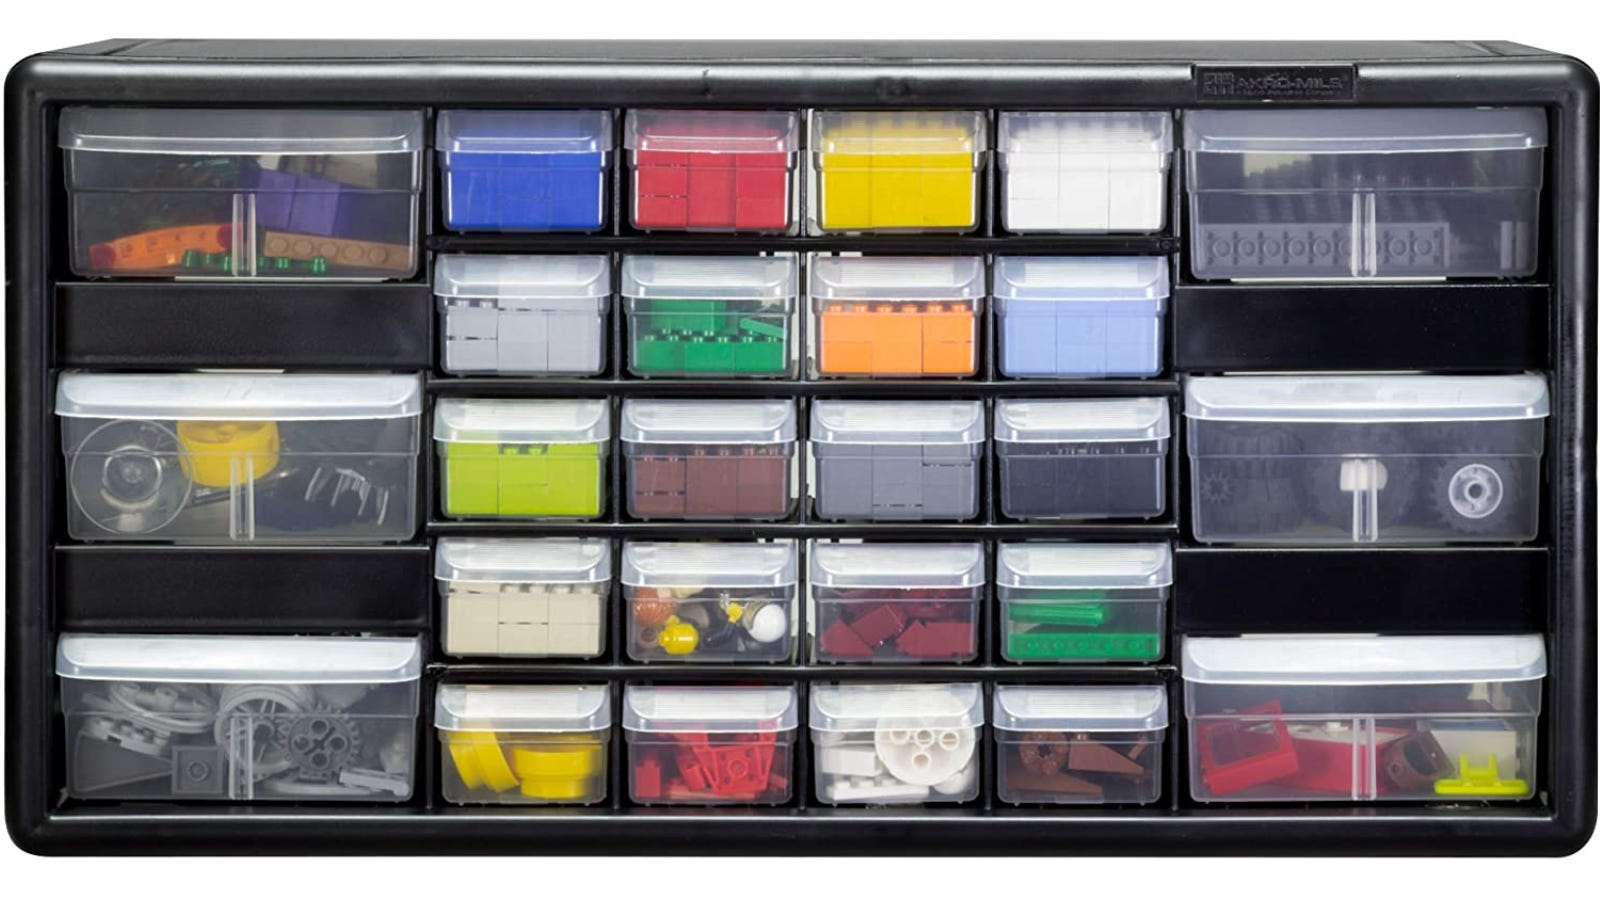 A black cabinet with 26 different transparent plastic drawers containing colorful building blocks.